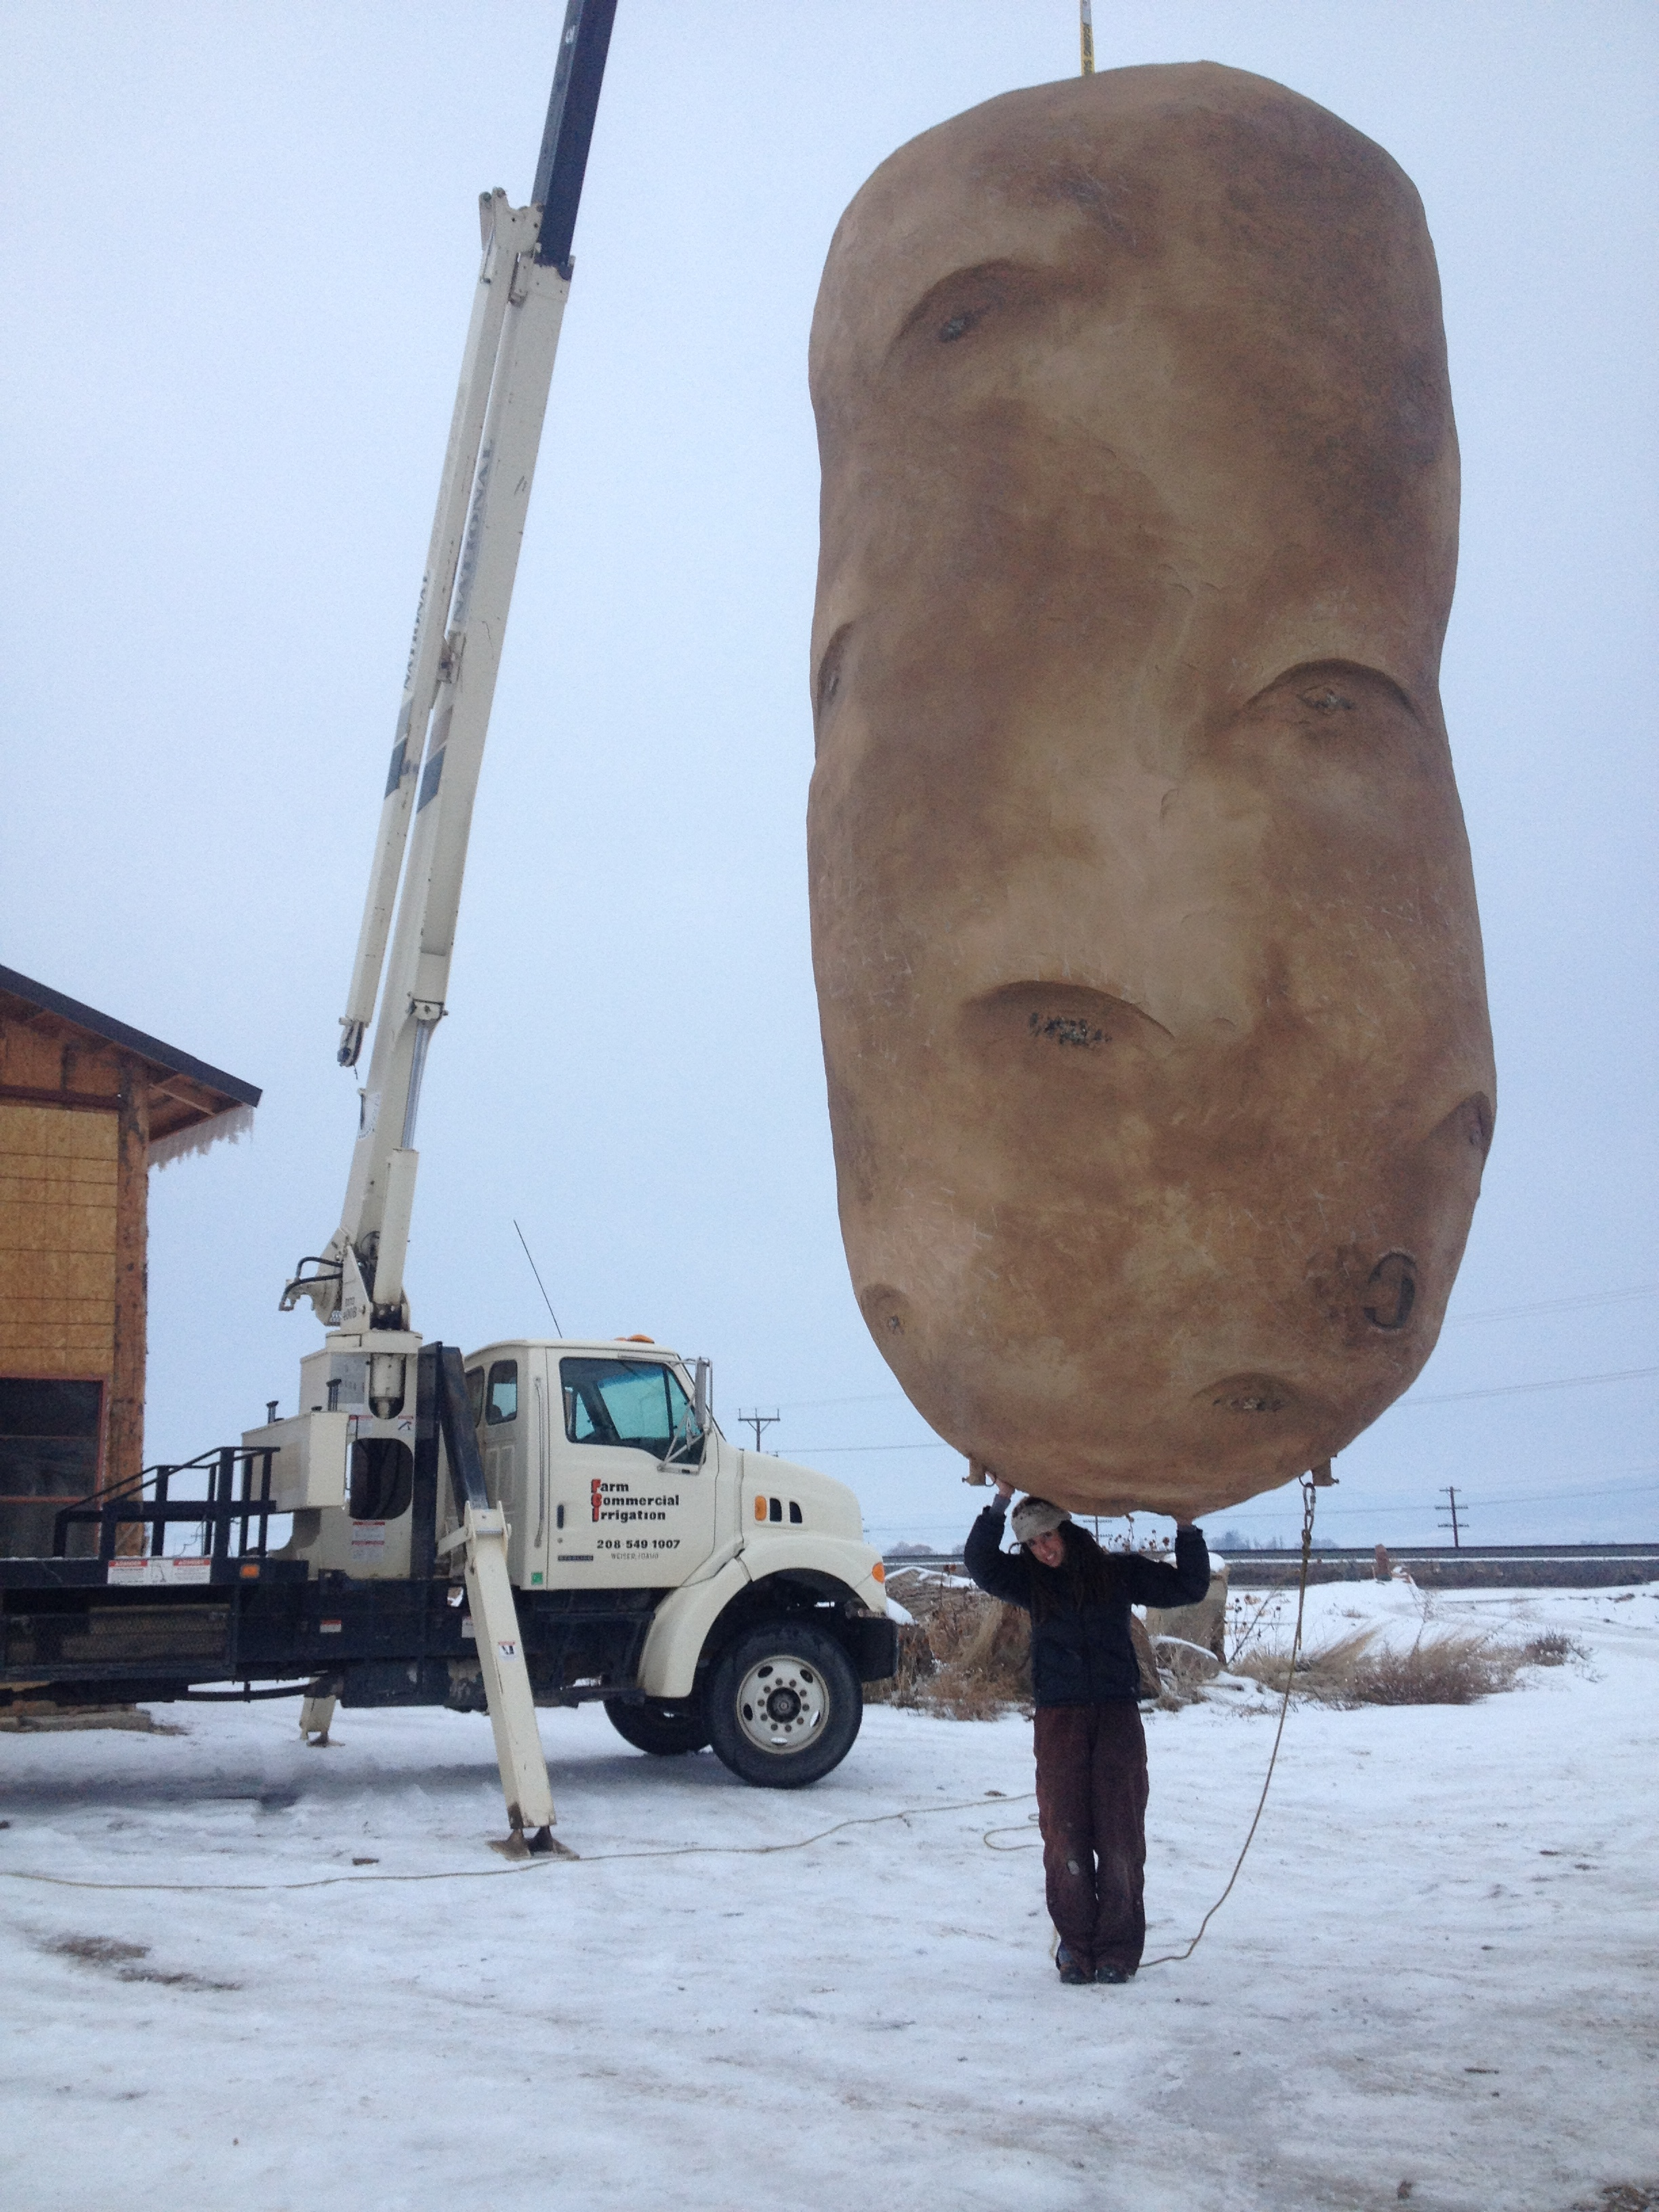 humble beginnings: the first new year's potato was built on a budget…sculpted entirely of styrofoam .